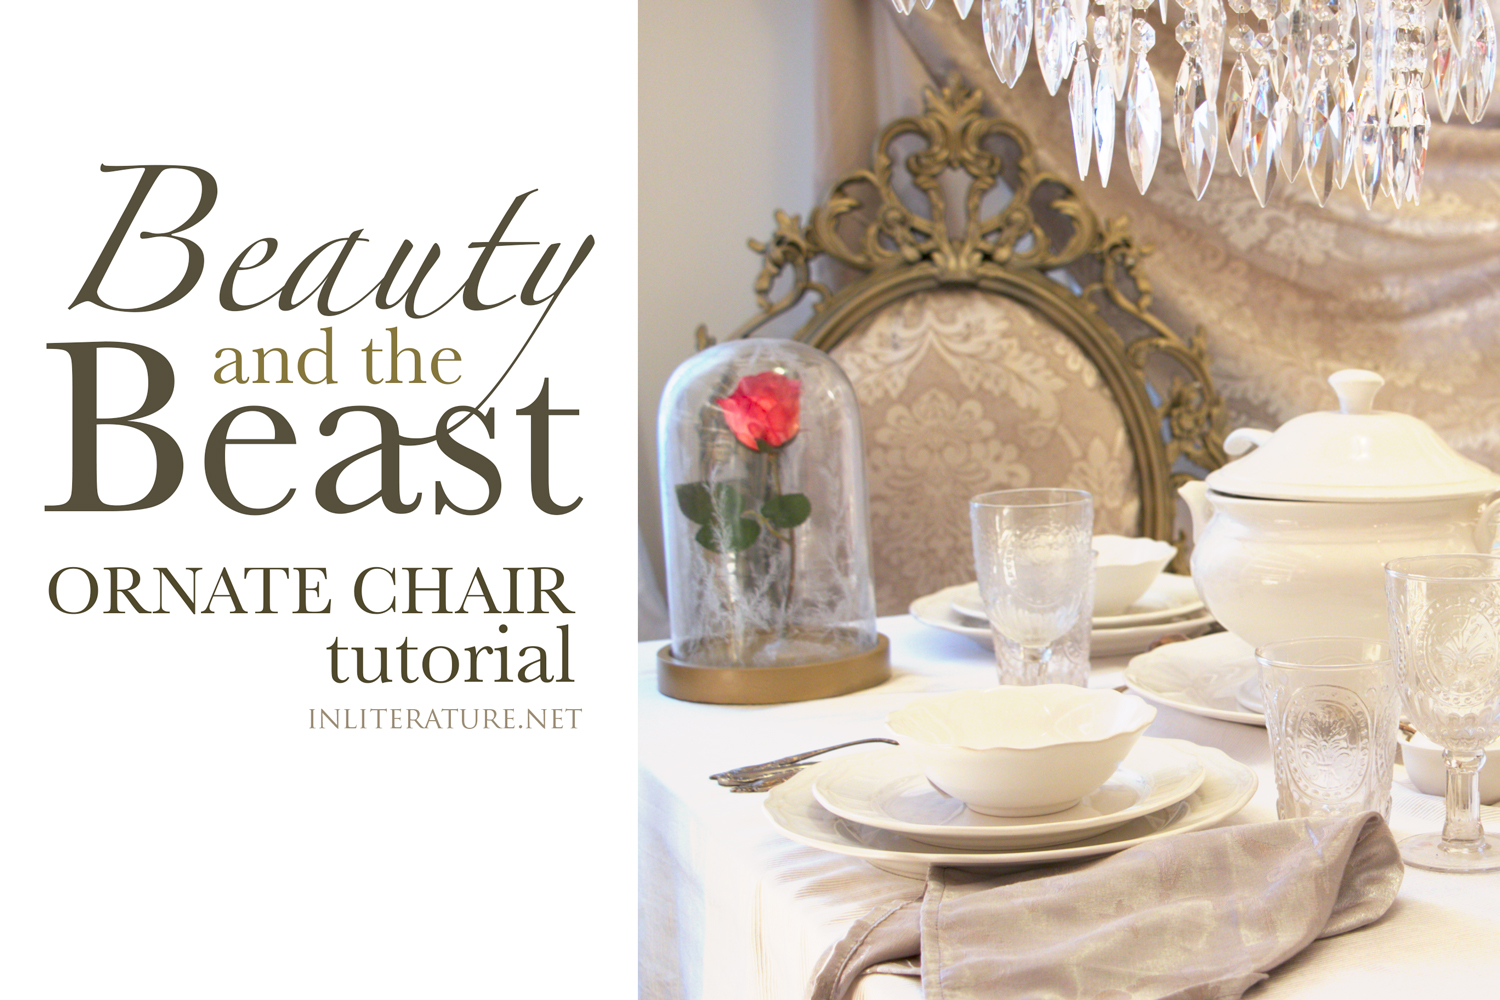 Tutorial on how to easily make a Beauty and the Beats ornate chair for a dinner party.